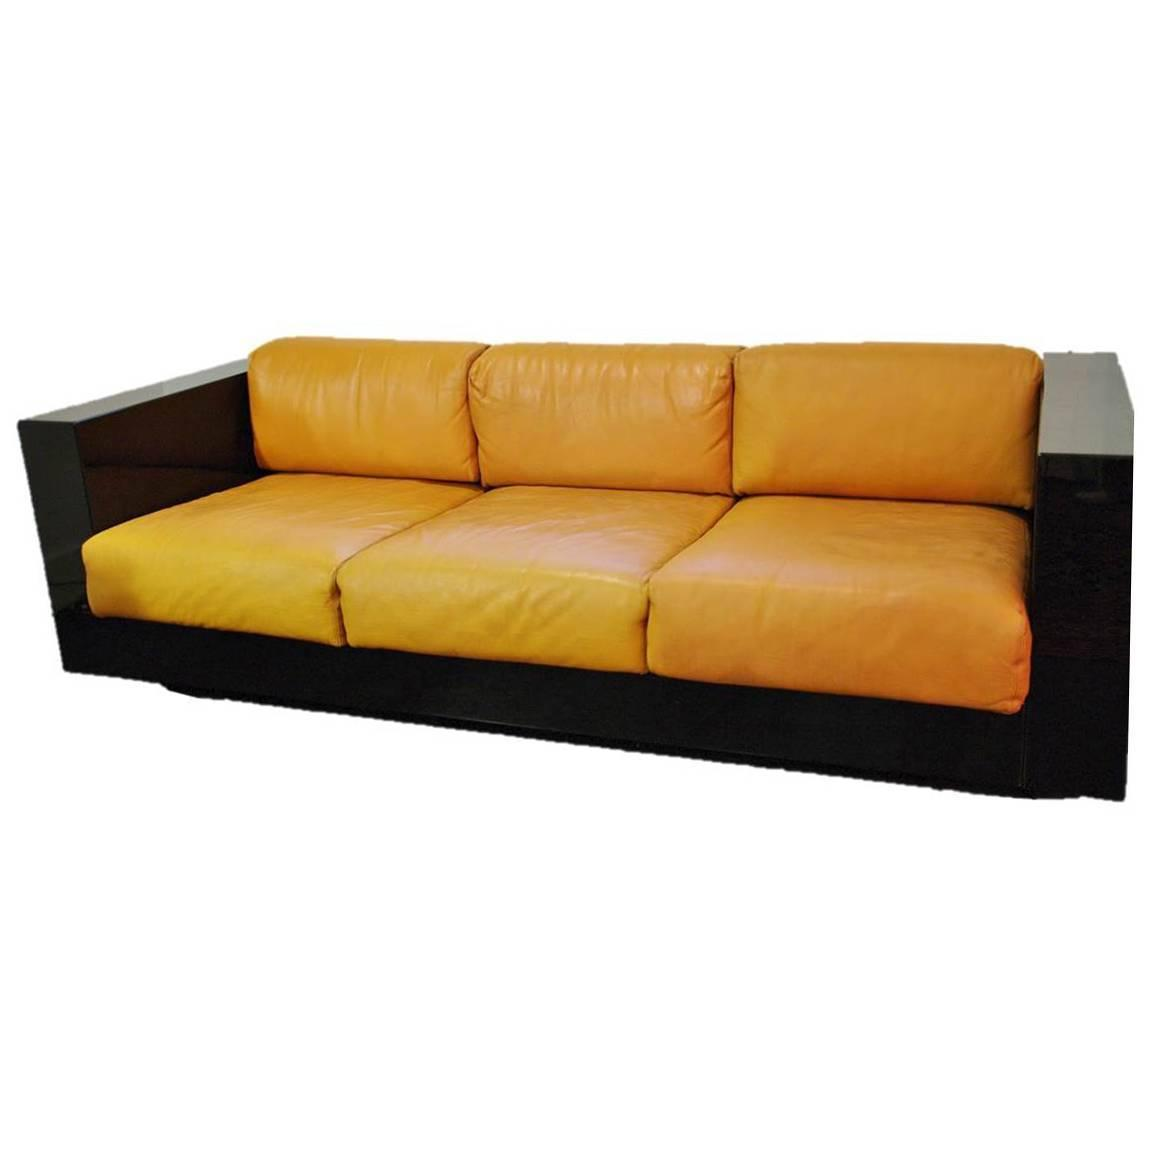 Saratoga By Poltronova Sofa Design By Massimo Vignelli 1964 At 1stdibs